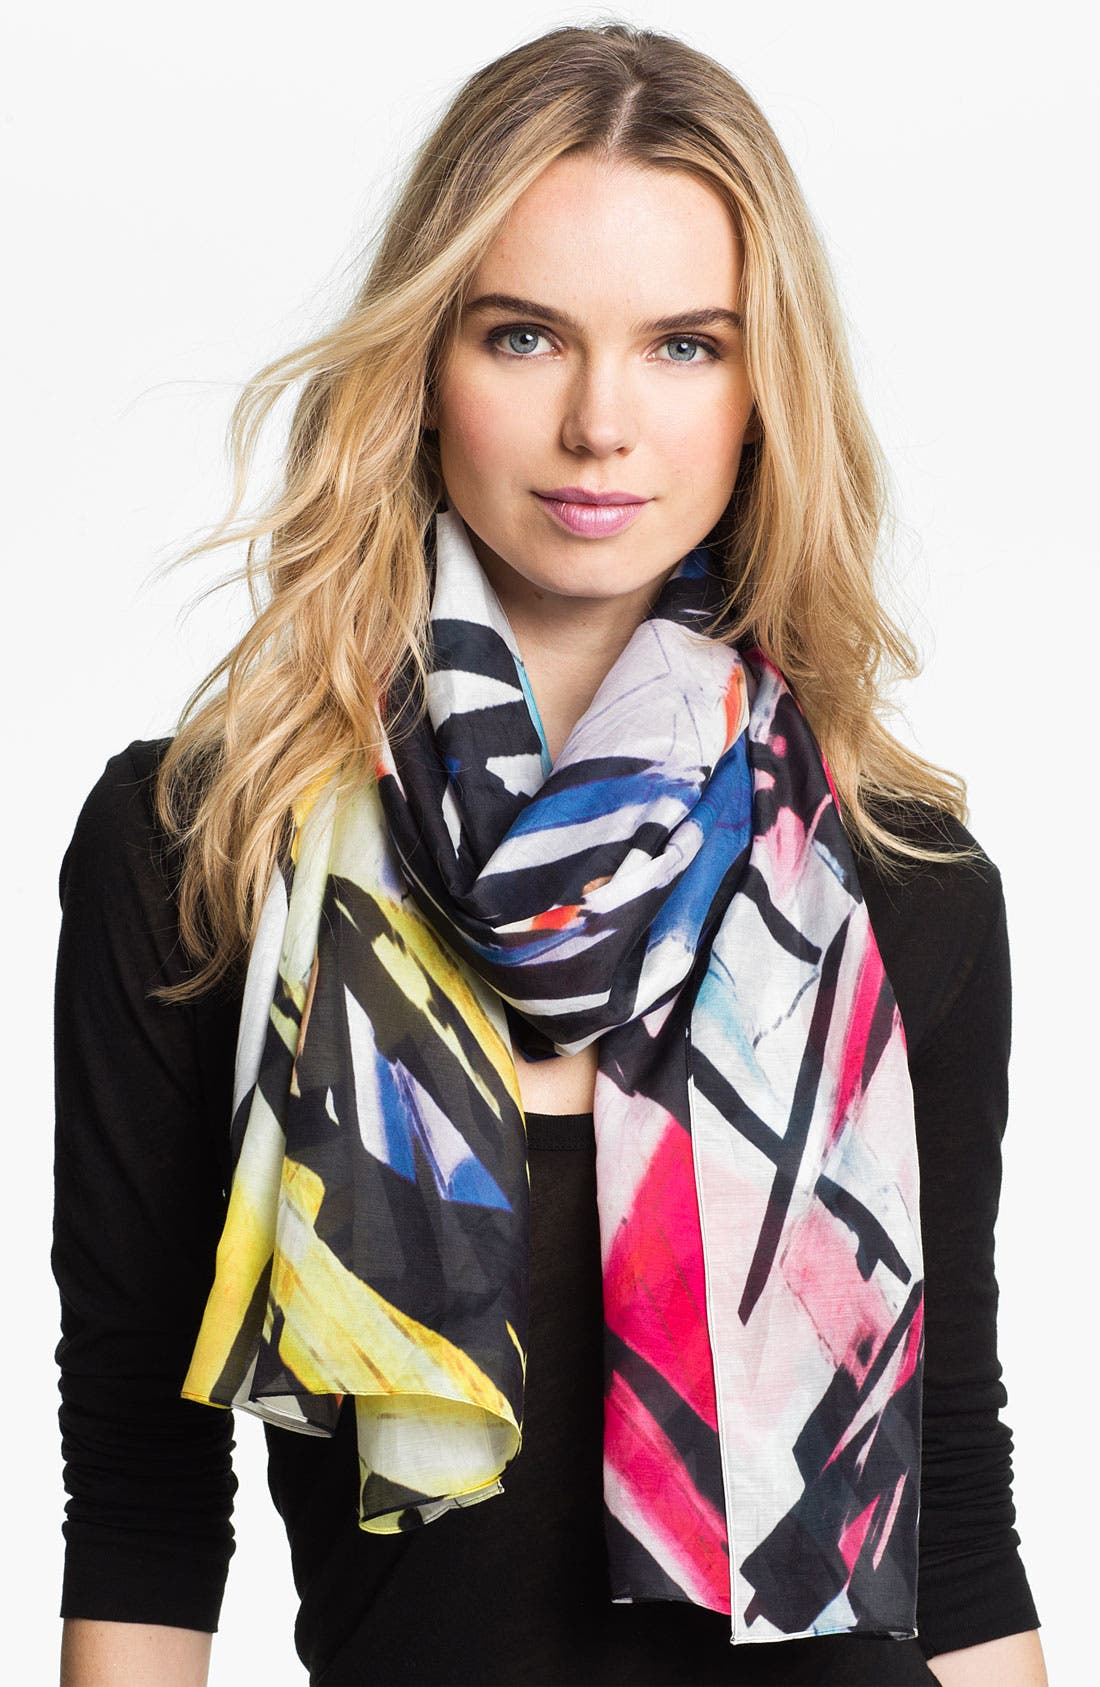 Alternate Image 1 Selected - Front Row Society 'Pretty Lights' Cotton & Silk Scarf